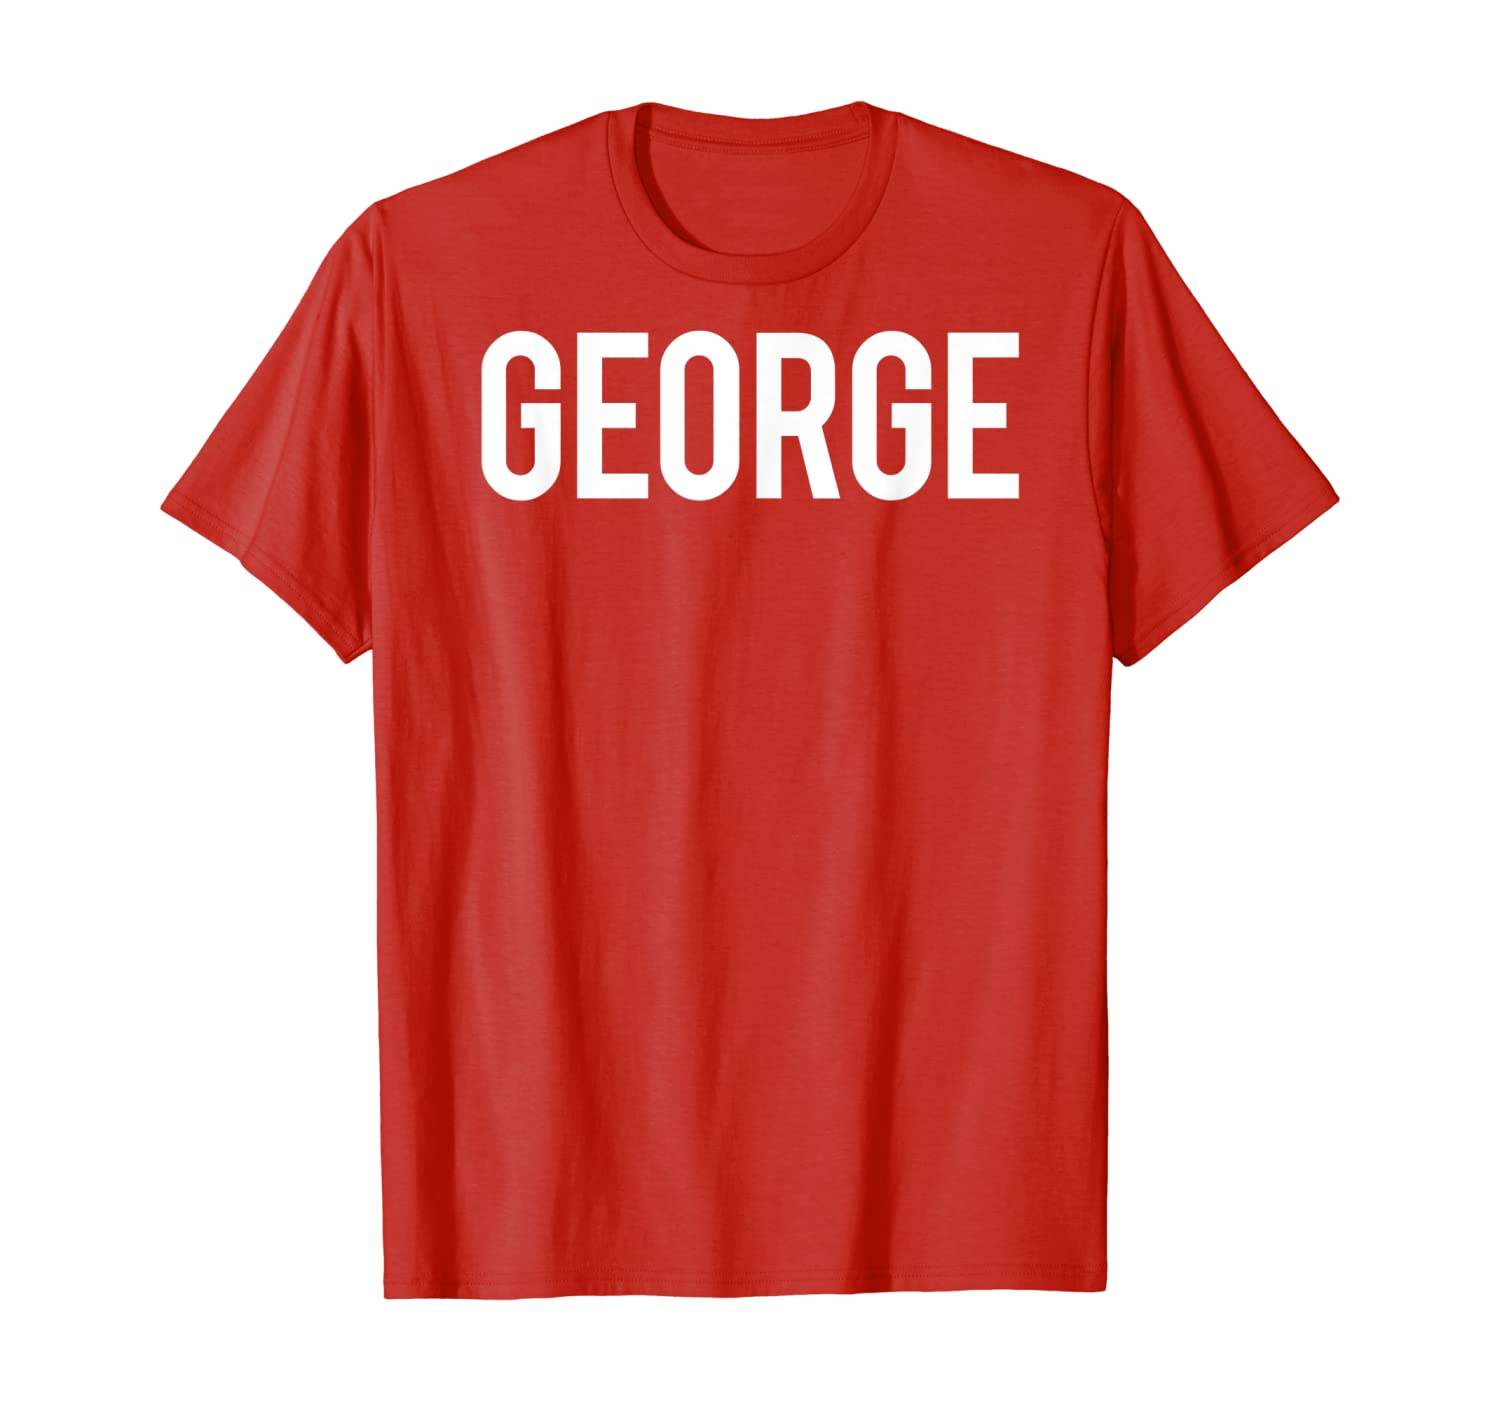 Cool new funny name fan cheap gift tee George T Shirt